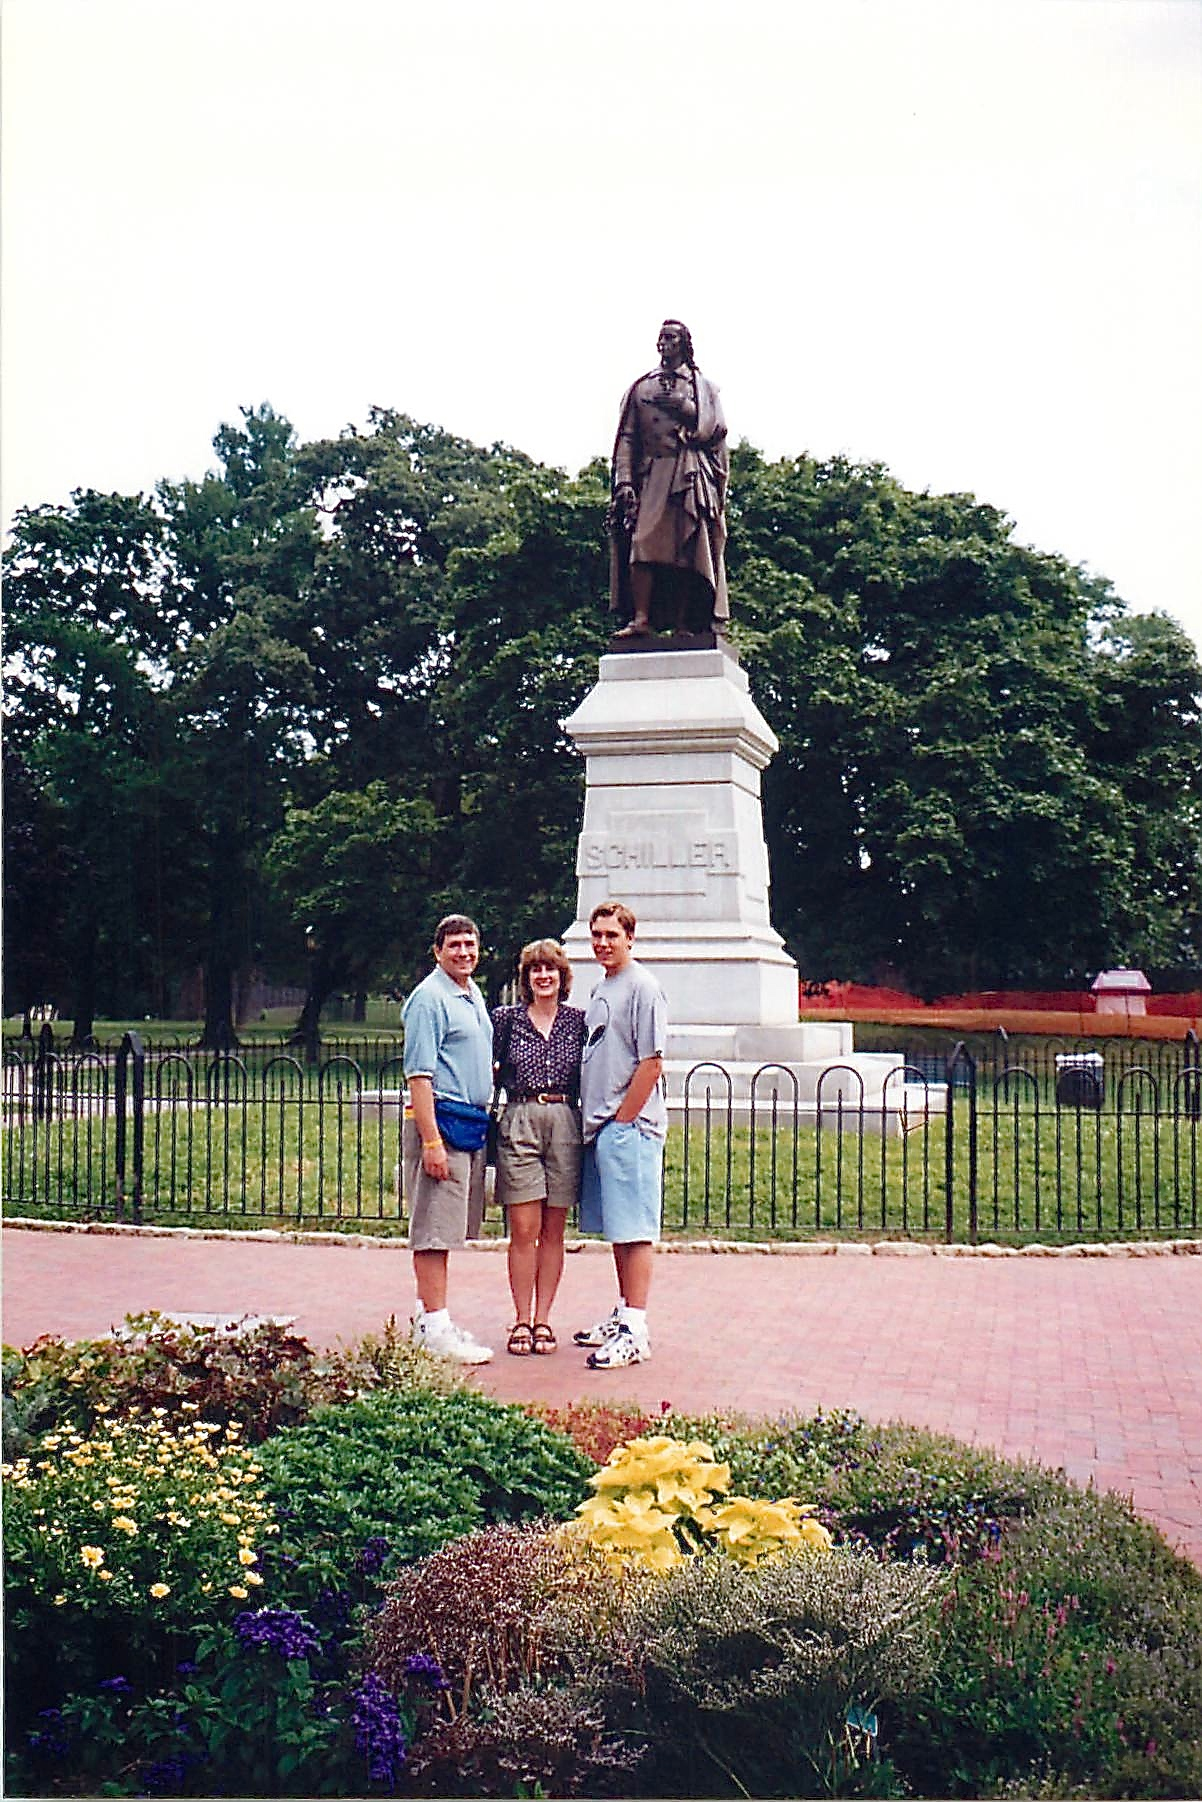 John, Sandra, Greg W. 1998 Columbus, Ohio